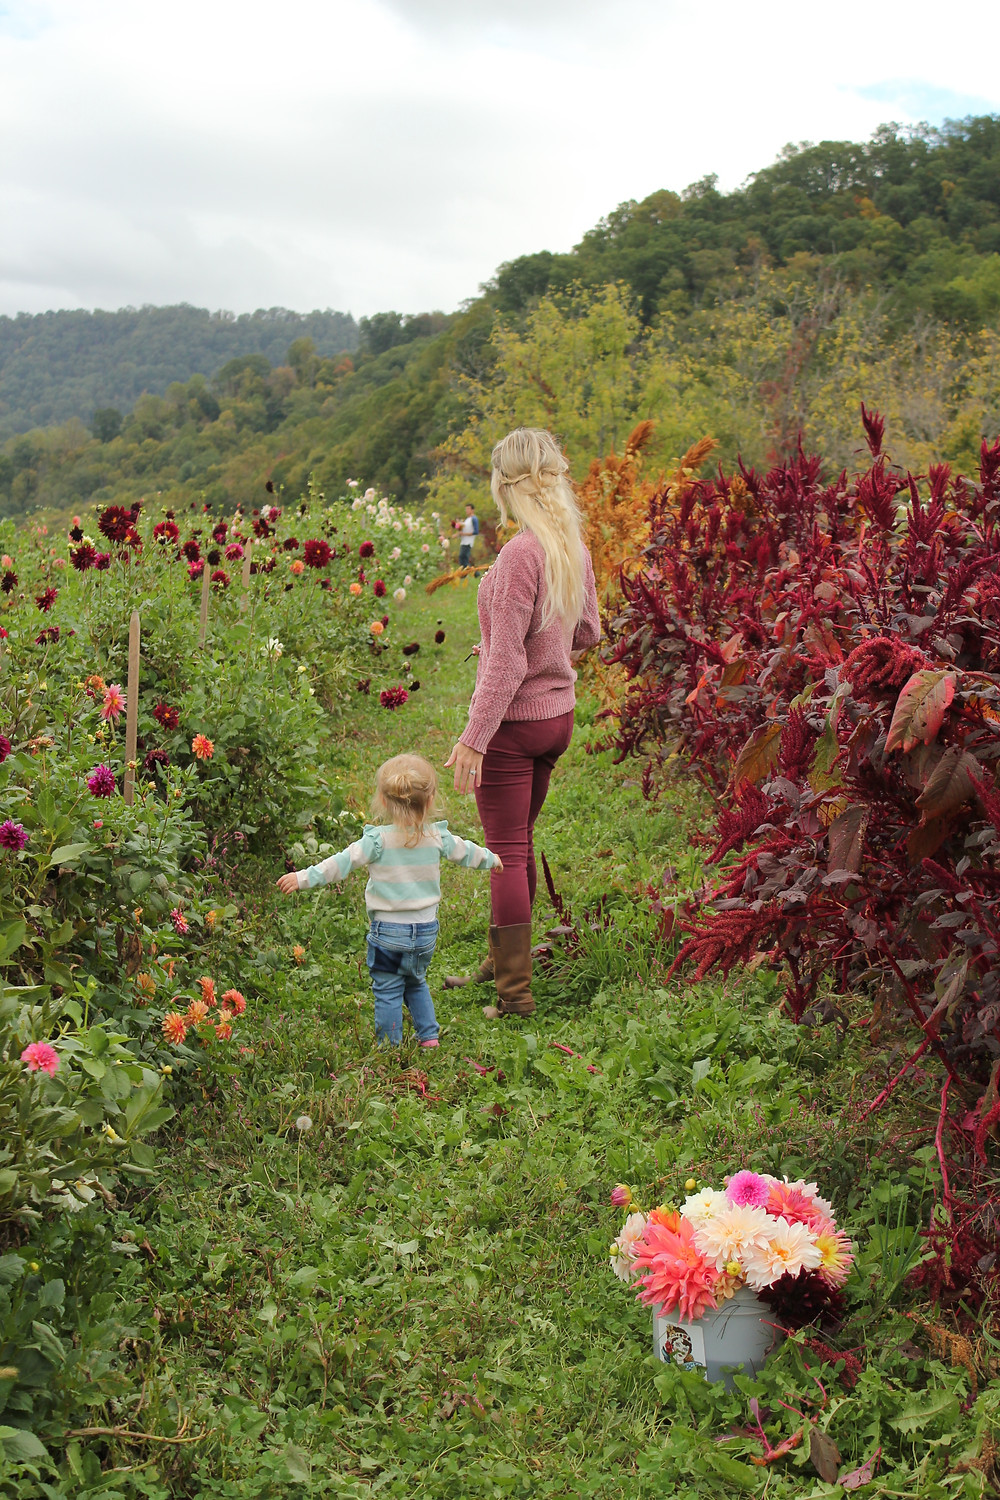 Mom and daughter admire the flowers at Lady Luck Flower Farm in Asheville, NC.